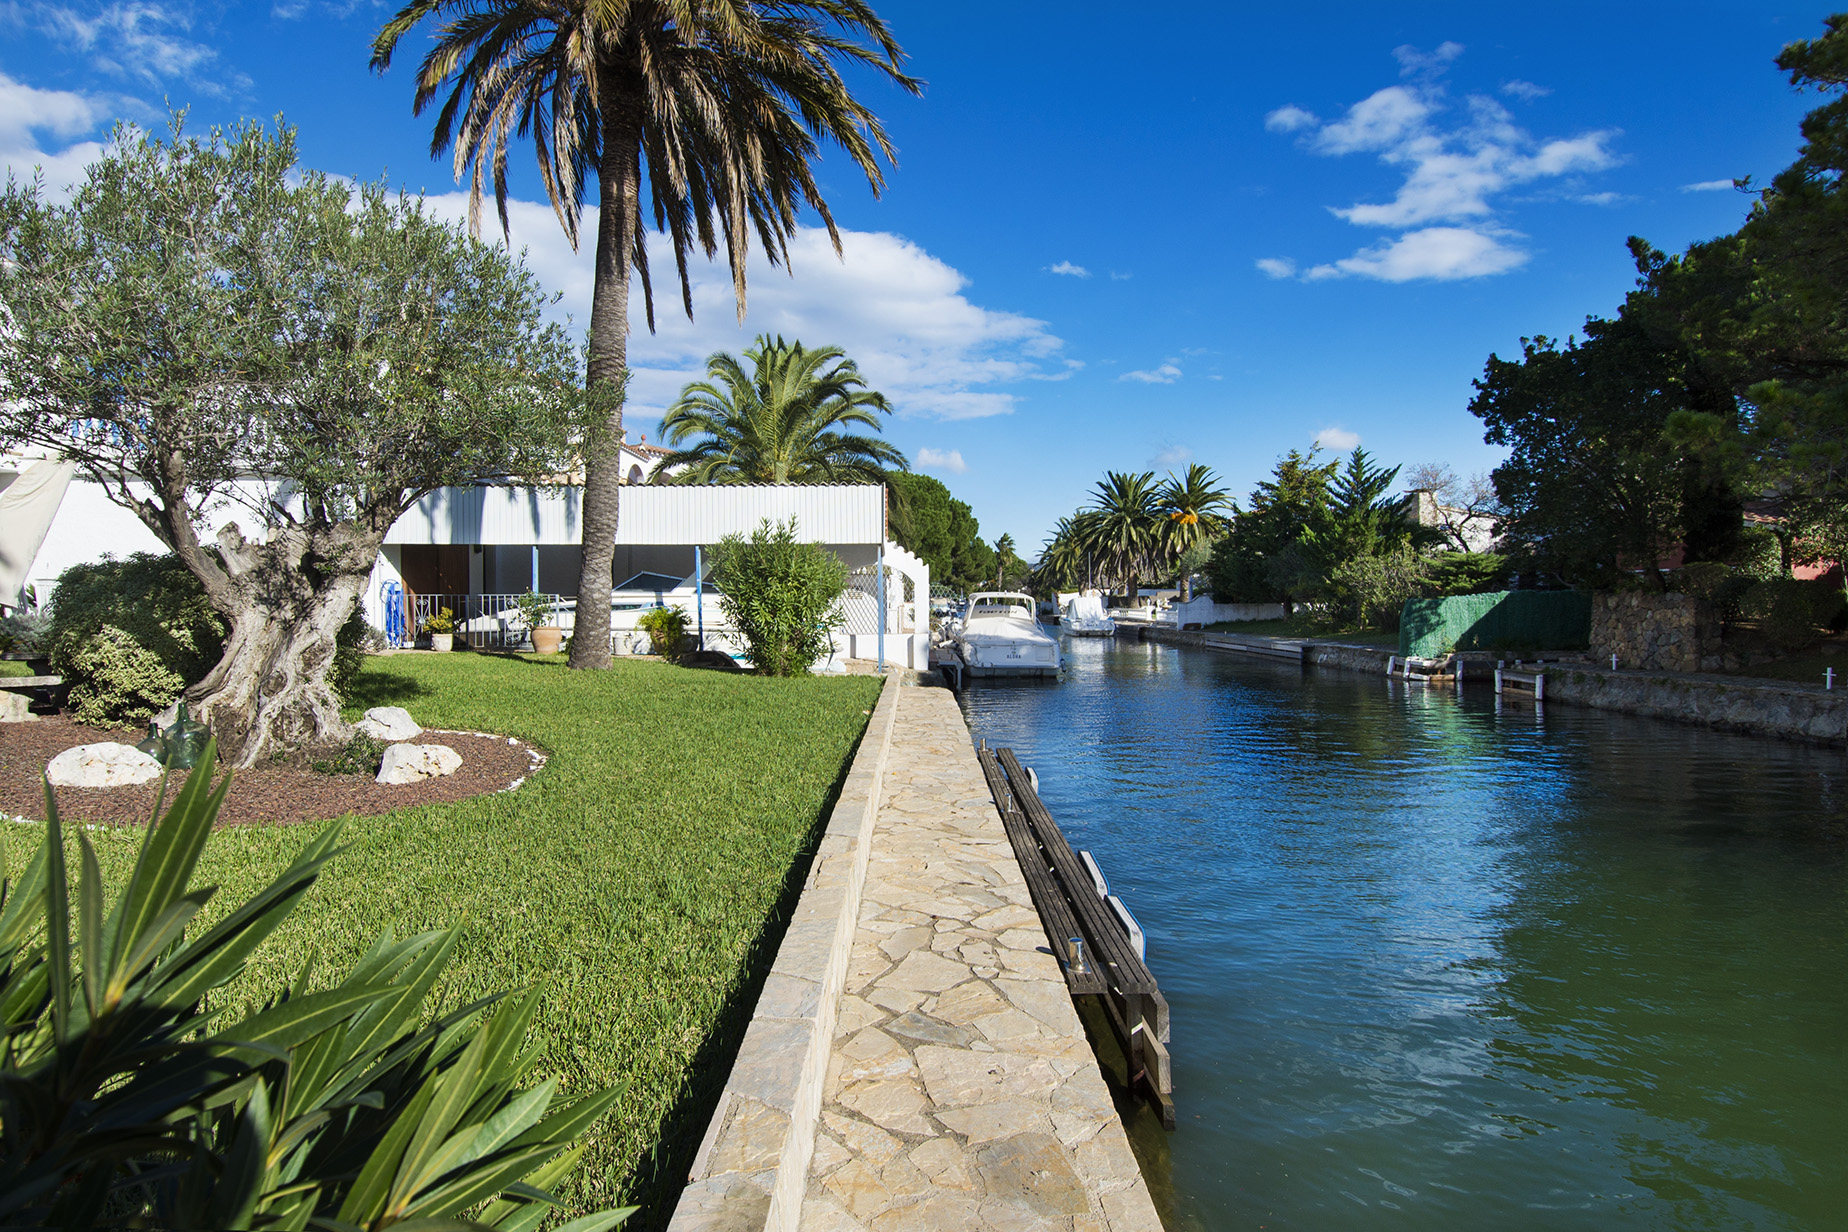 Single Family Home for Sale at Spacious property on the canal with boat garage and mooring Empuriabrava, Costa Brava, 17487 Spain